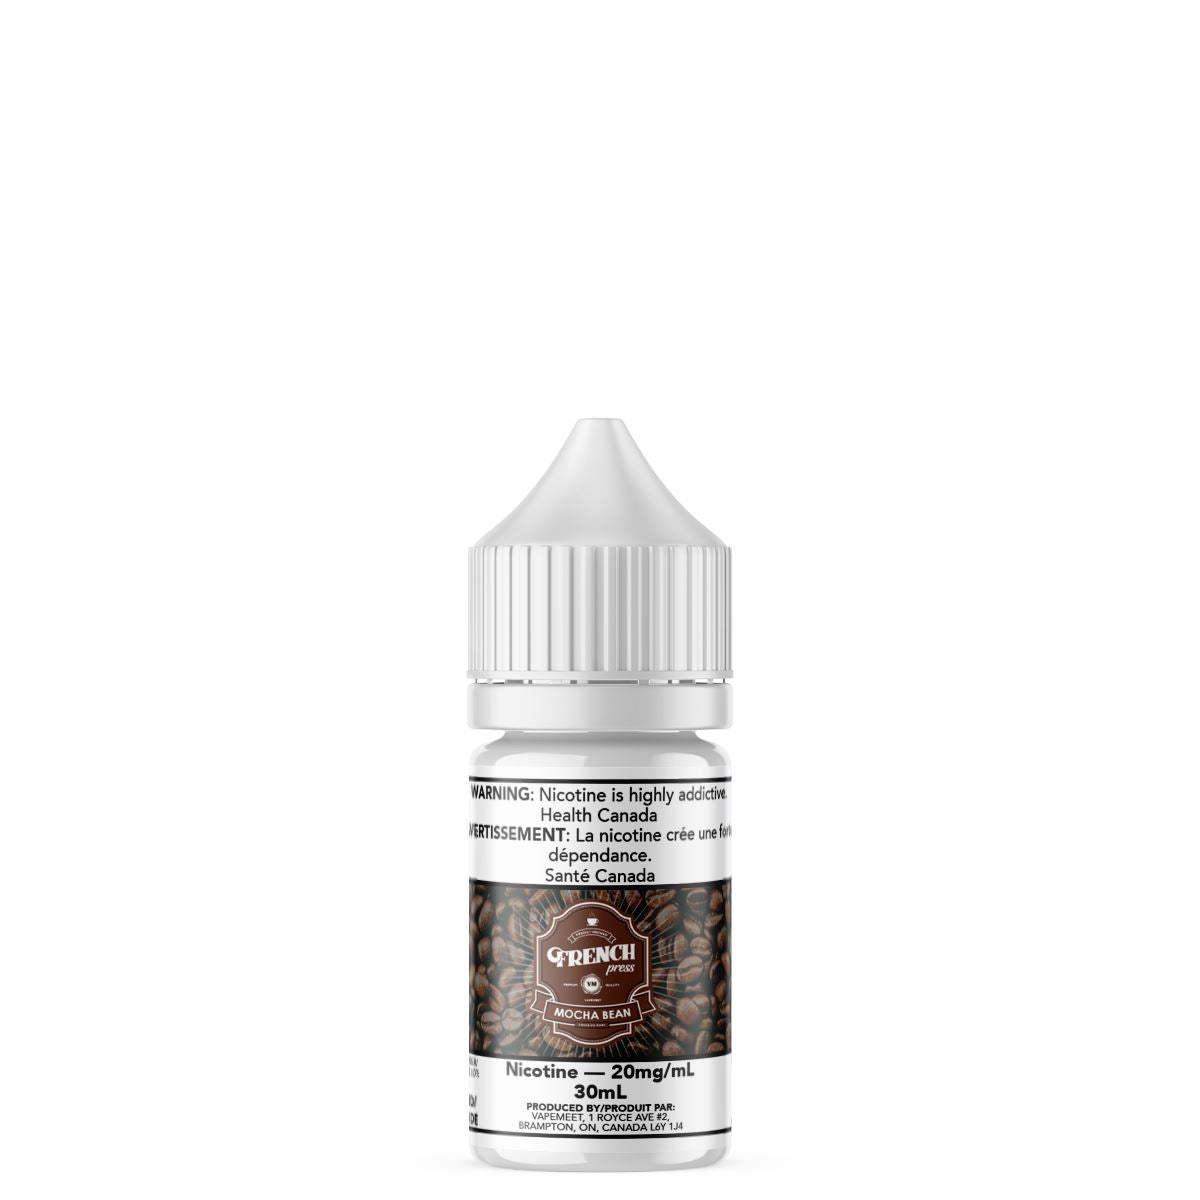 French Press Salted - Mocha Bean E-Liquid French Press Salted 30mL 20 mg/mL